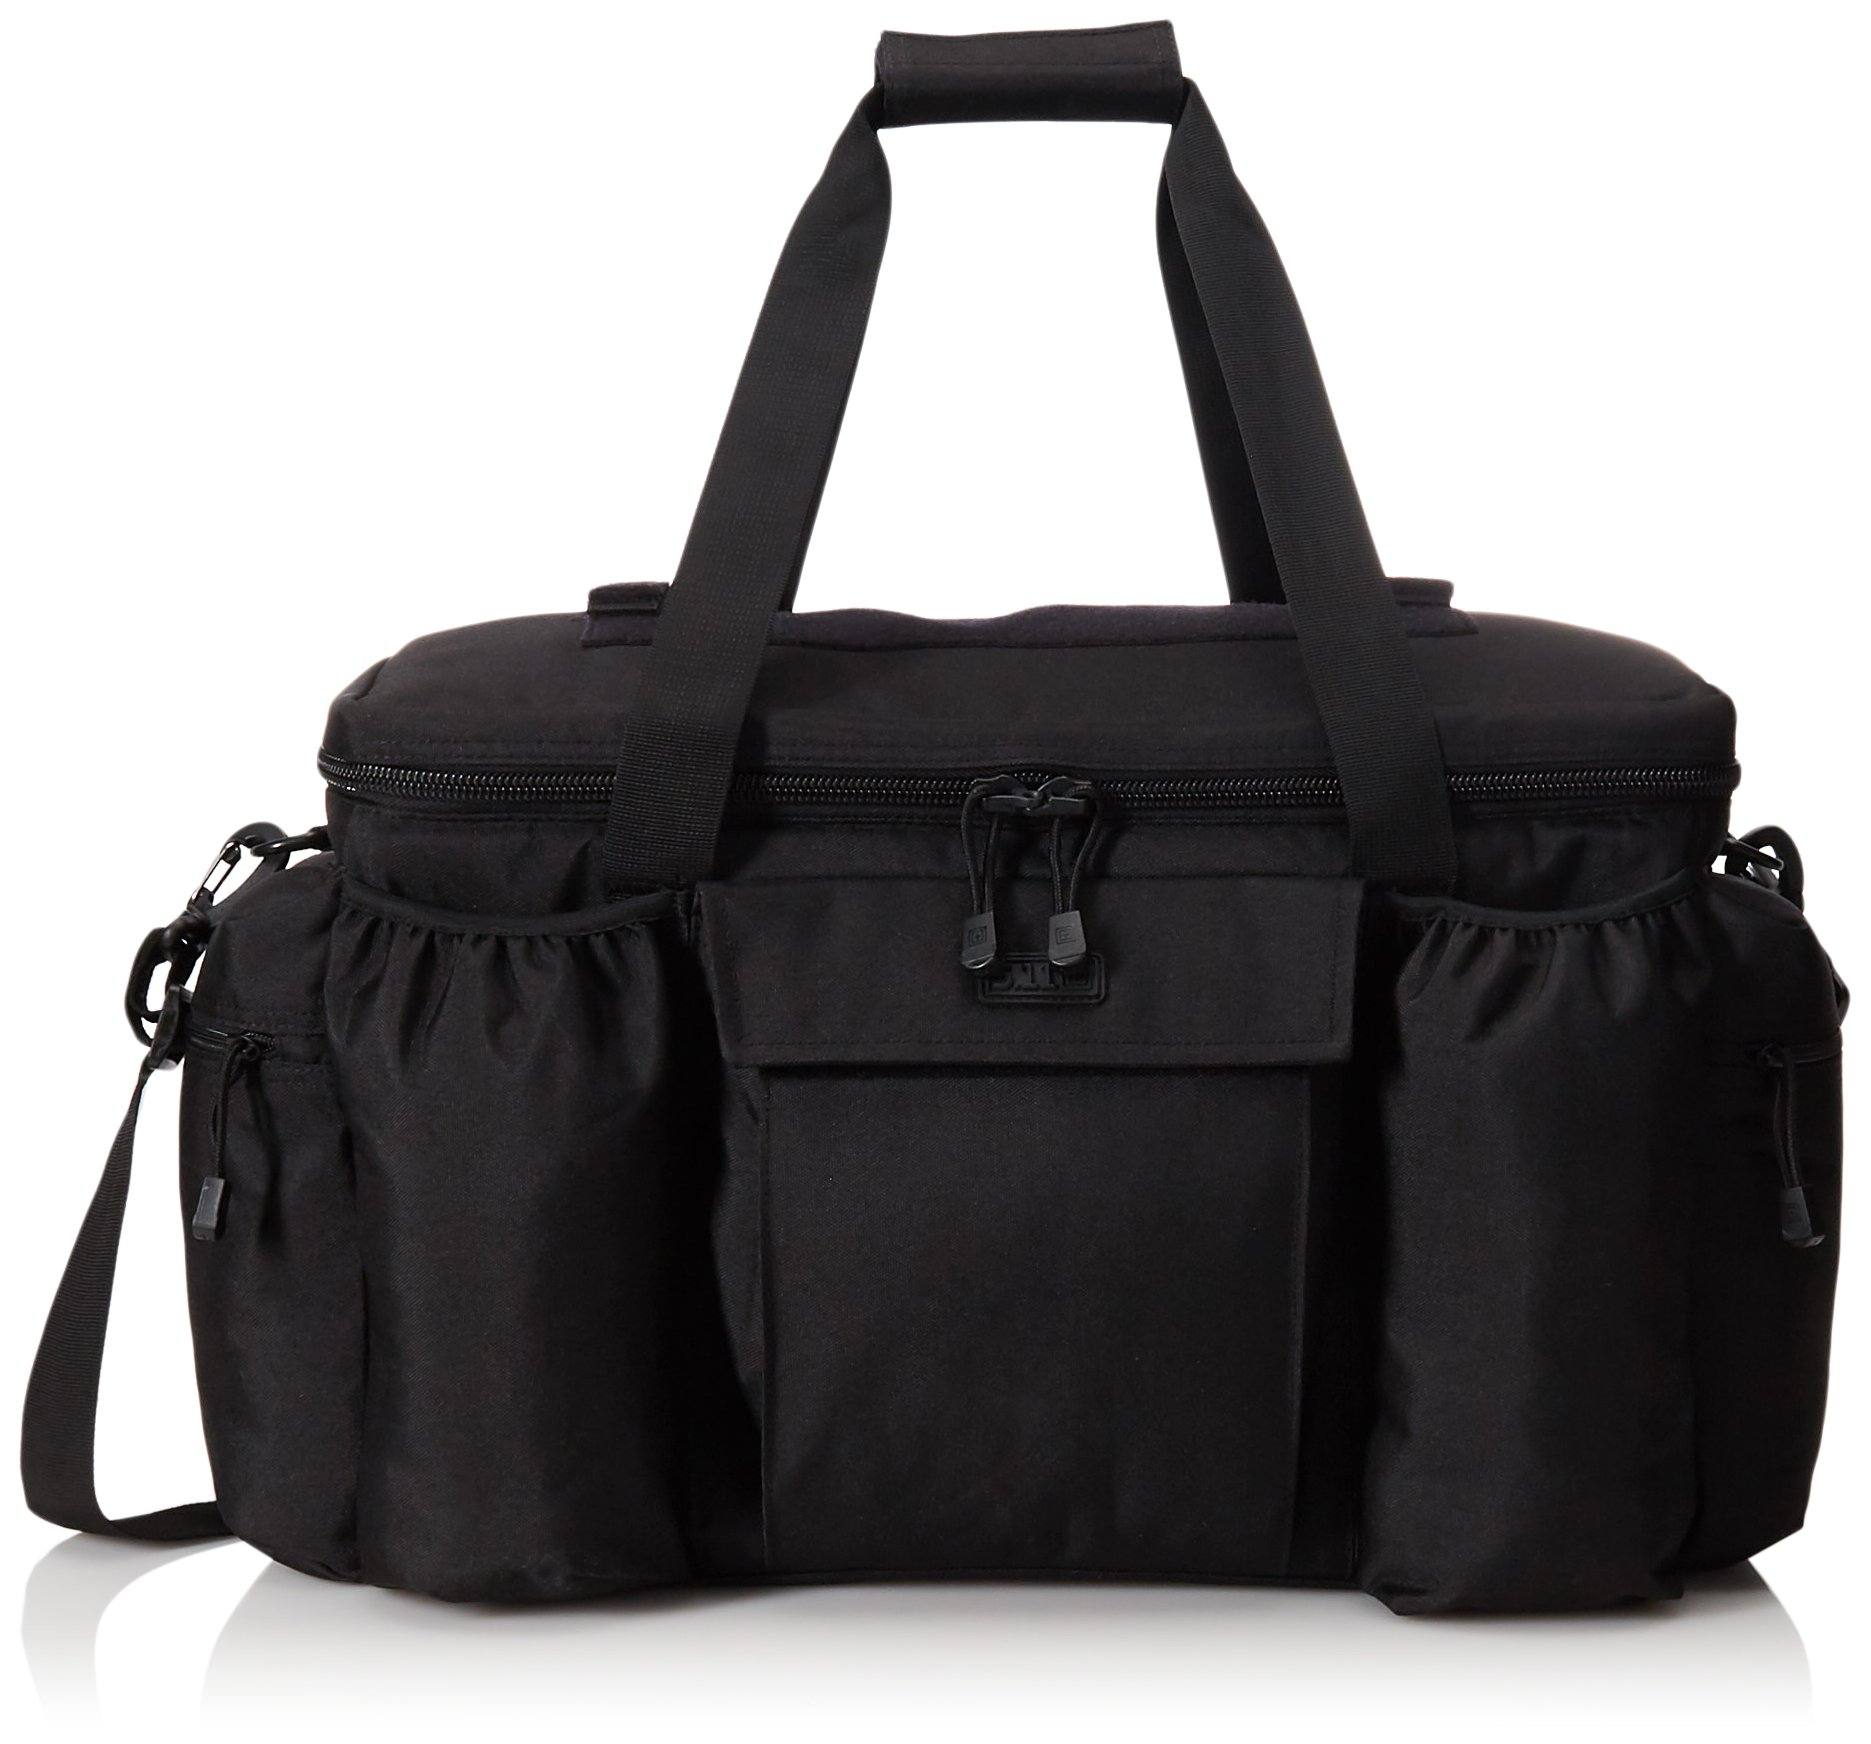 5.11 Patrol Ready Duty Bag for Police Law Enforcement Security, Style 59012, Black